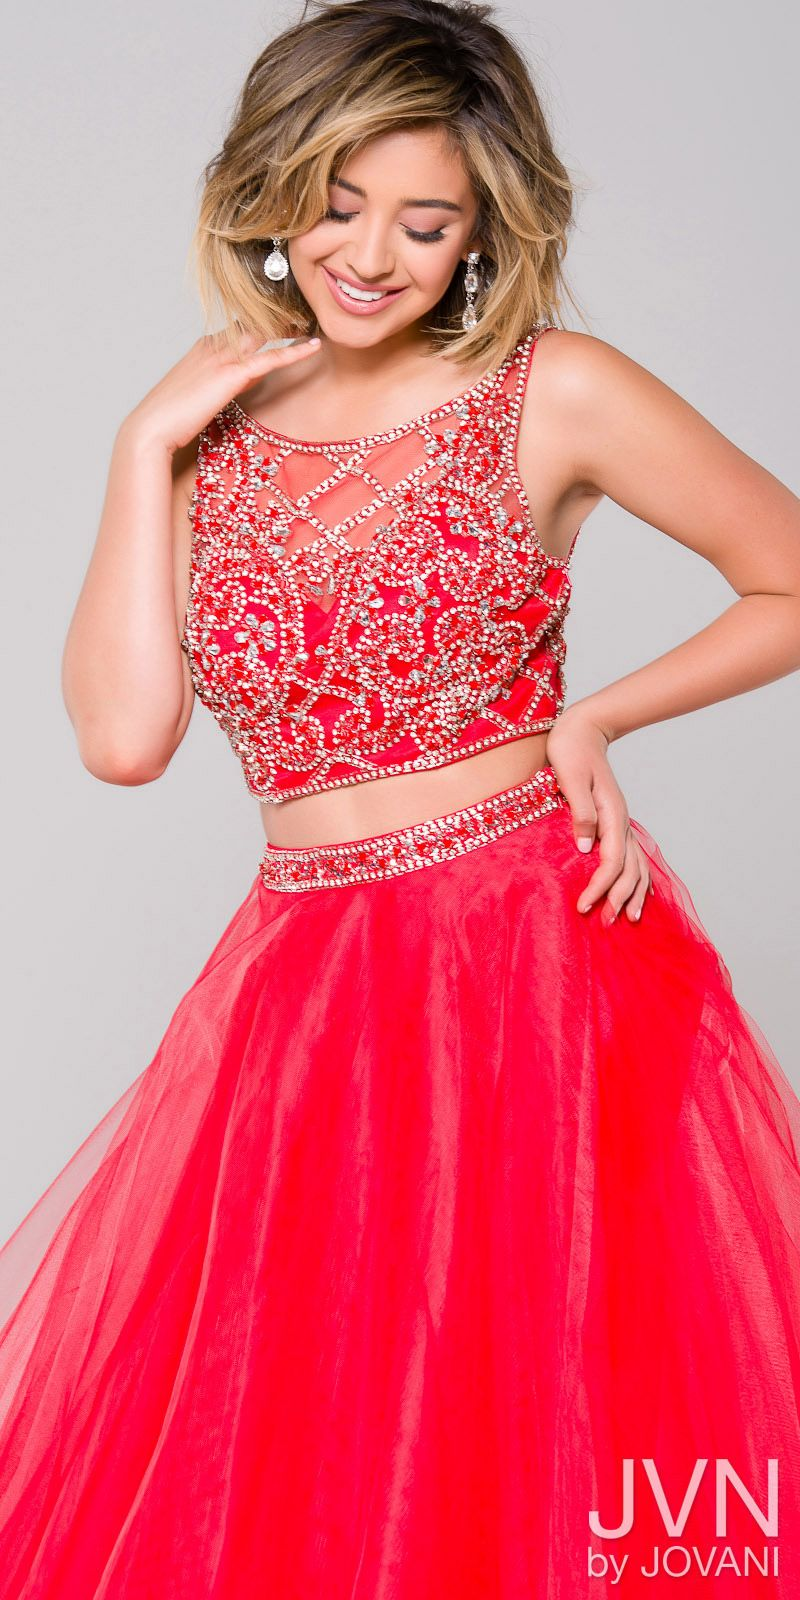 Crystal Embellished Two Piece Ball Gown from JVN by Jovani #edressme ...